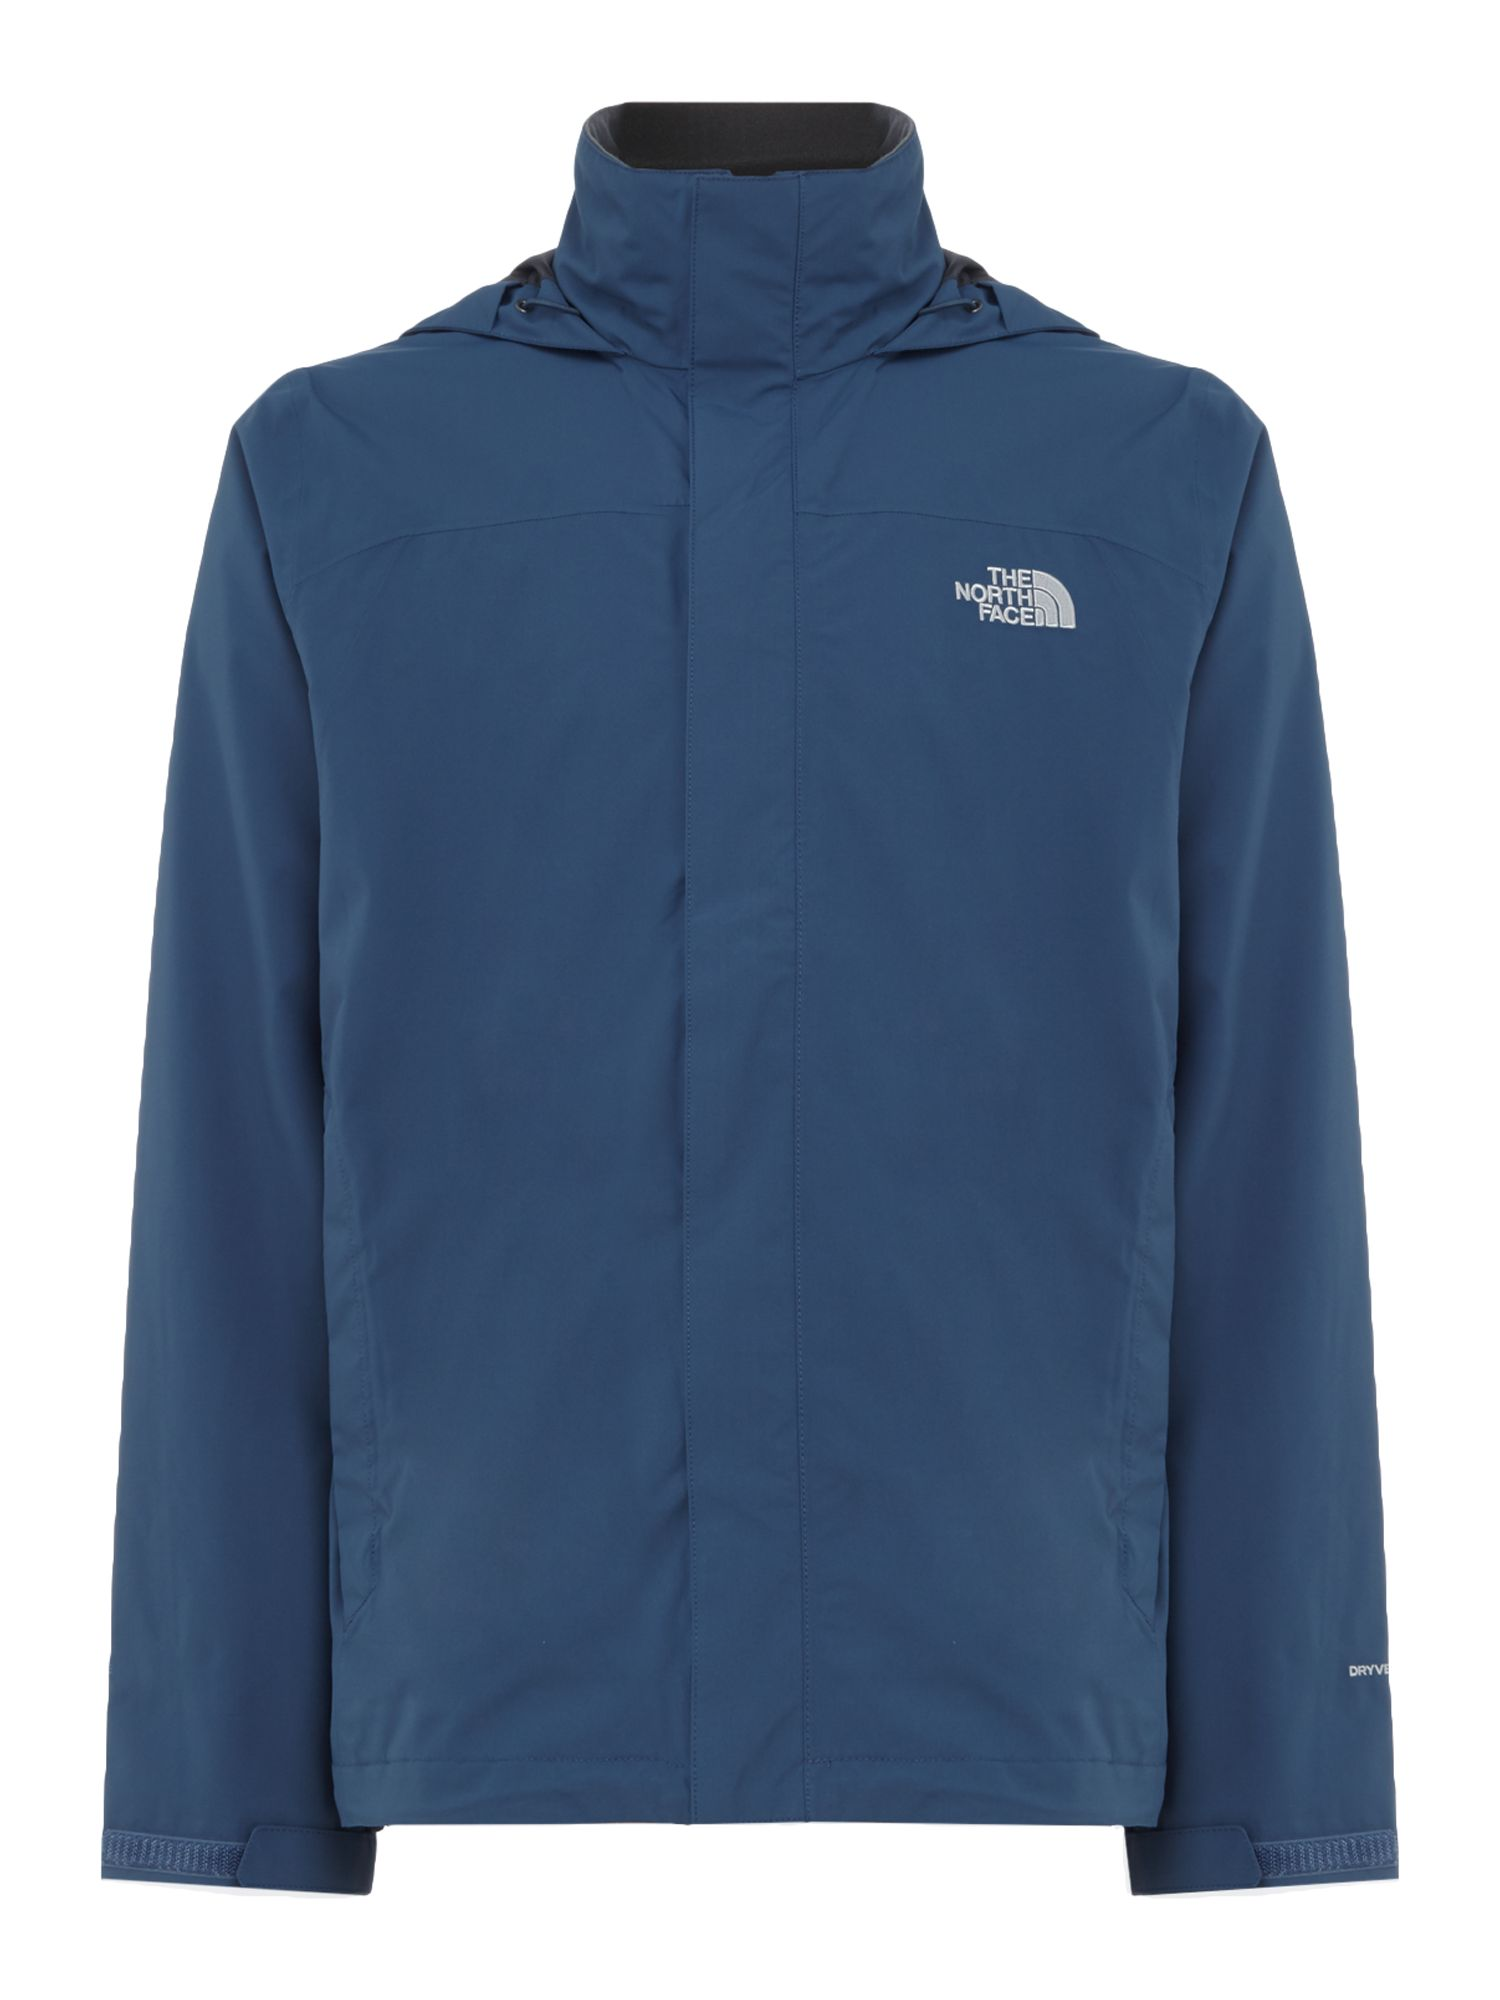 Mens The North Face Sangro jacket Mid Blue